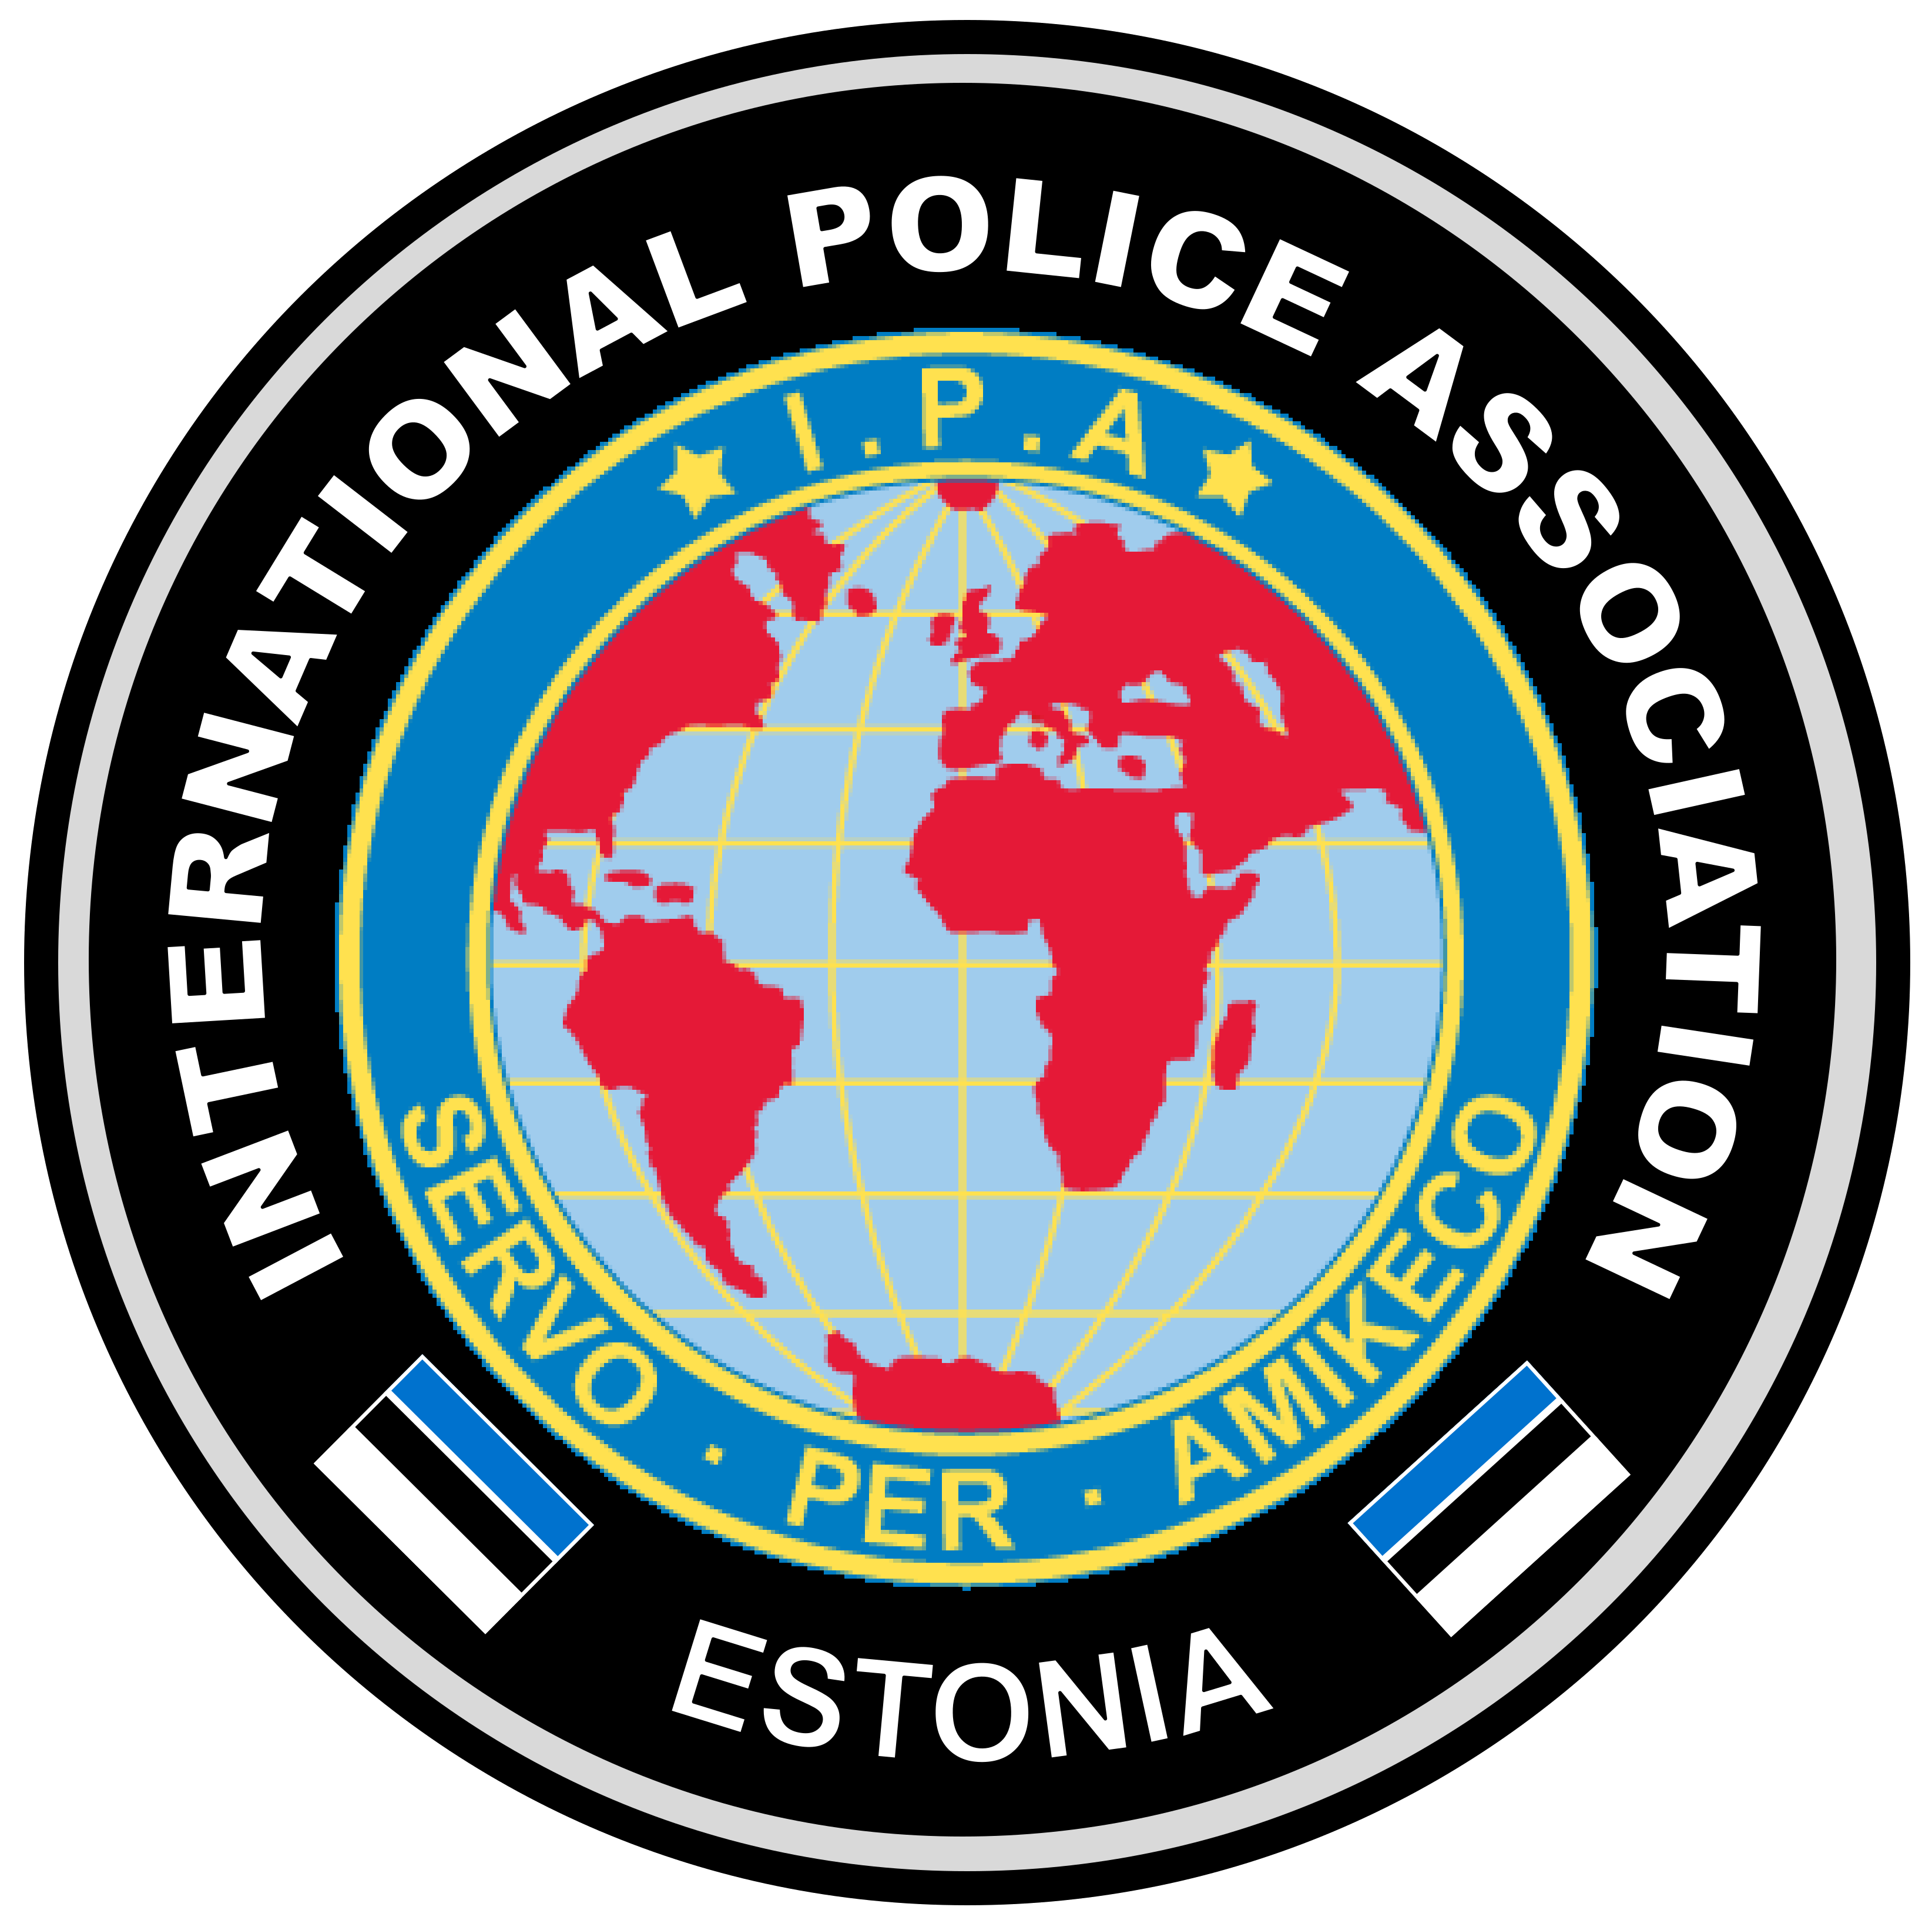 IPA Estonia's Police able to wear IPA Patch on their uniforms